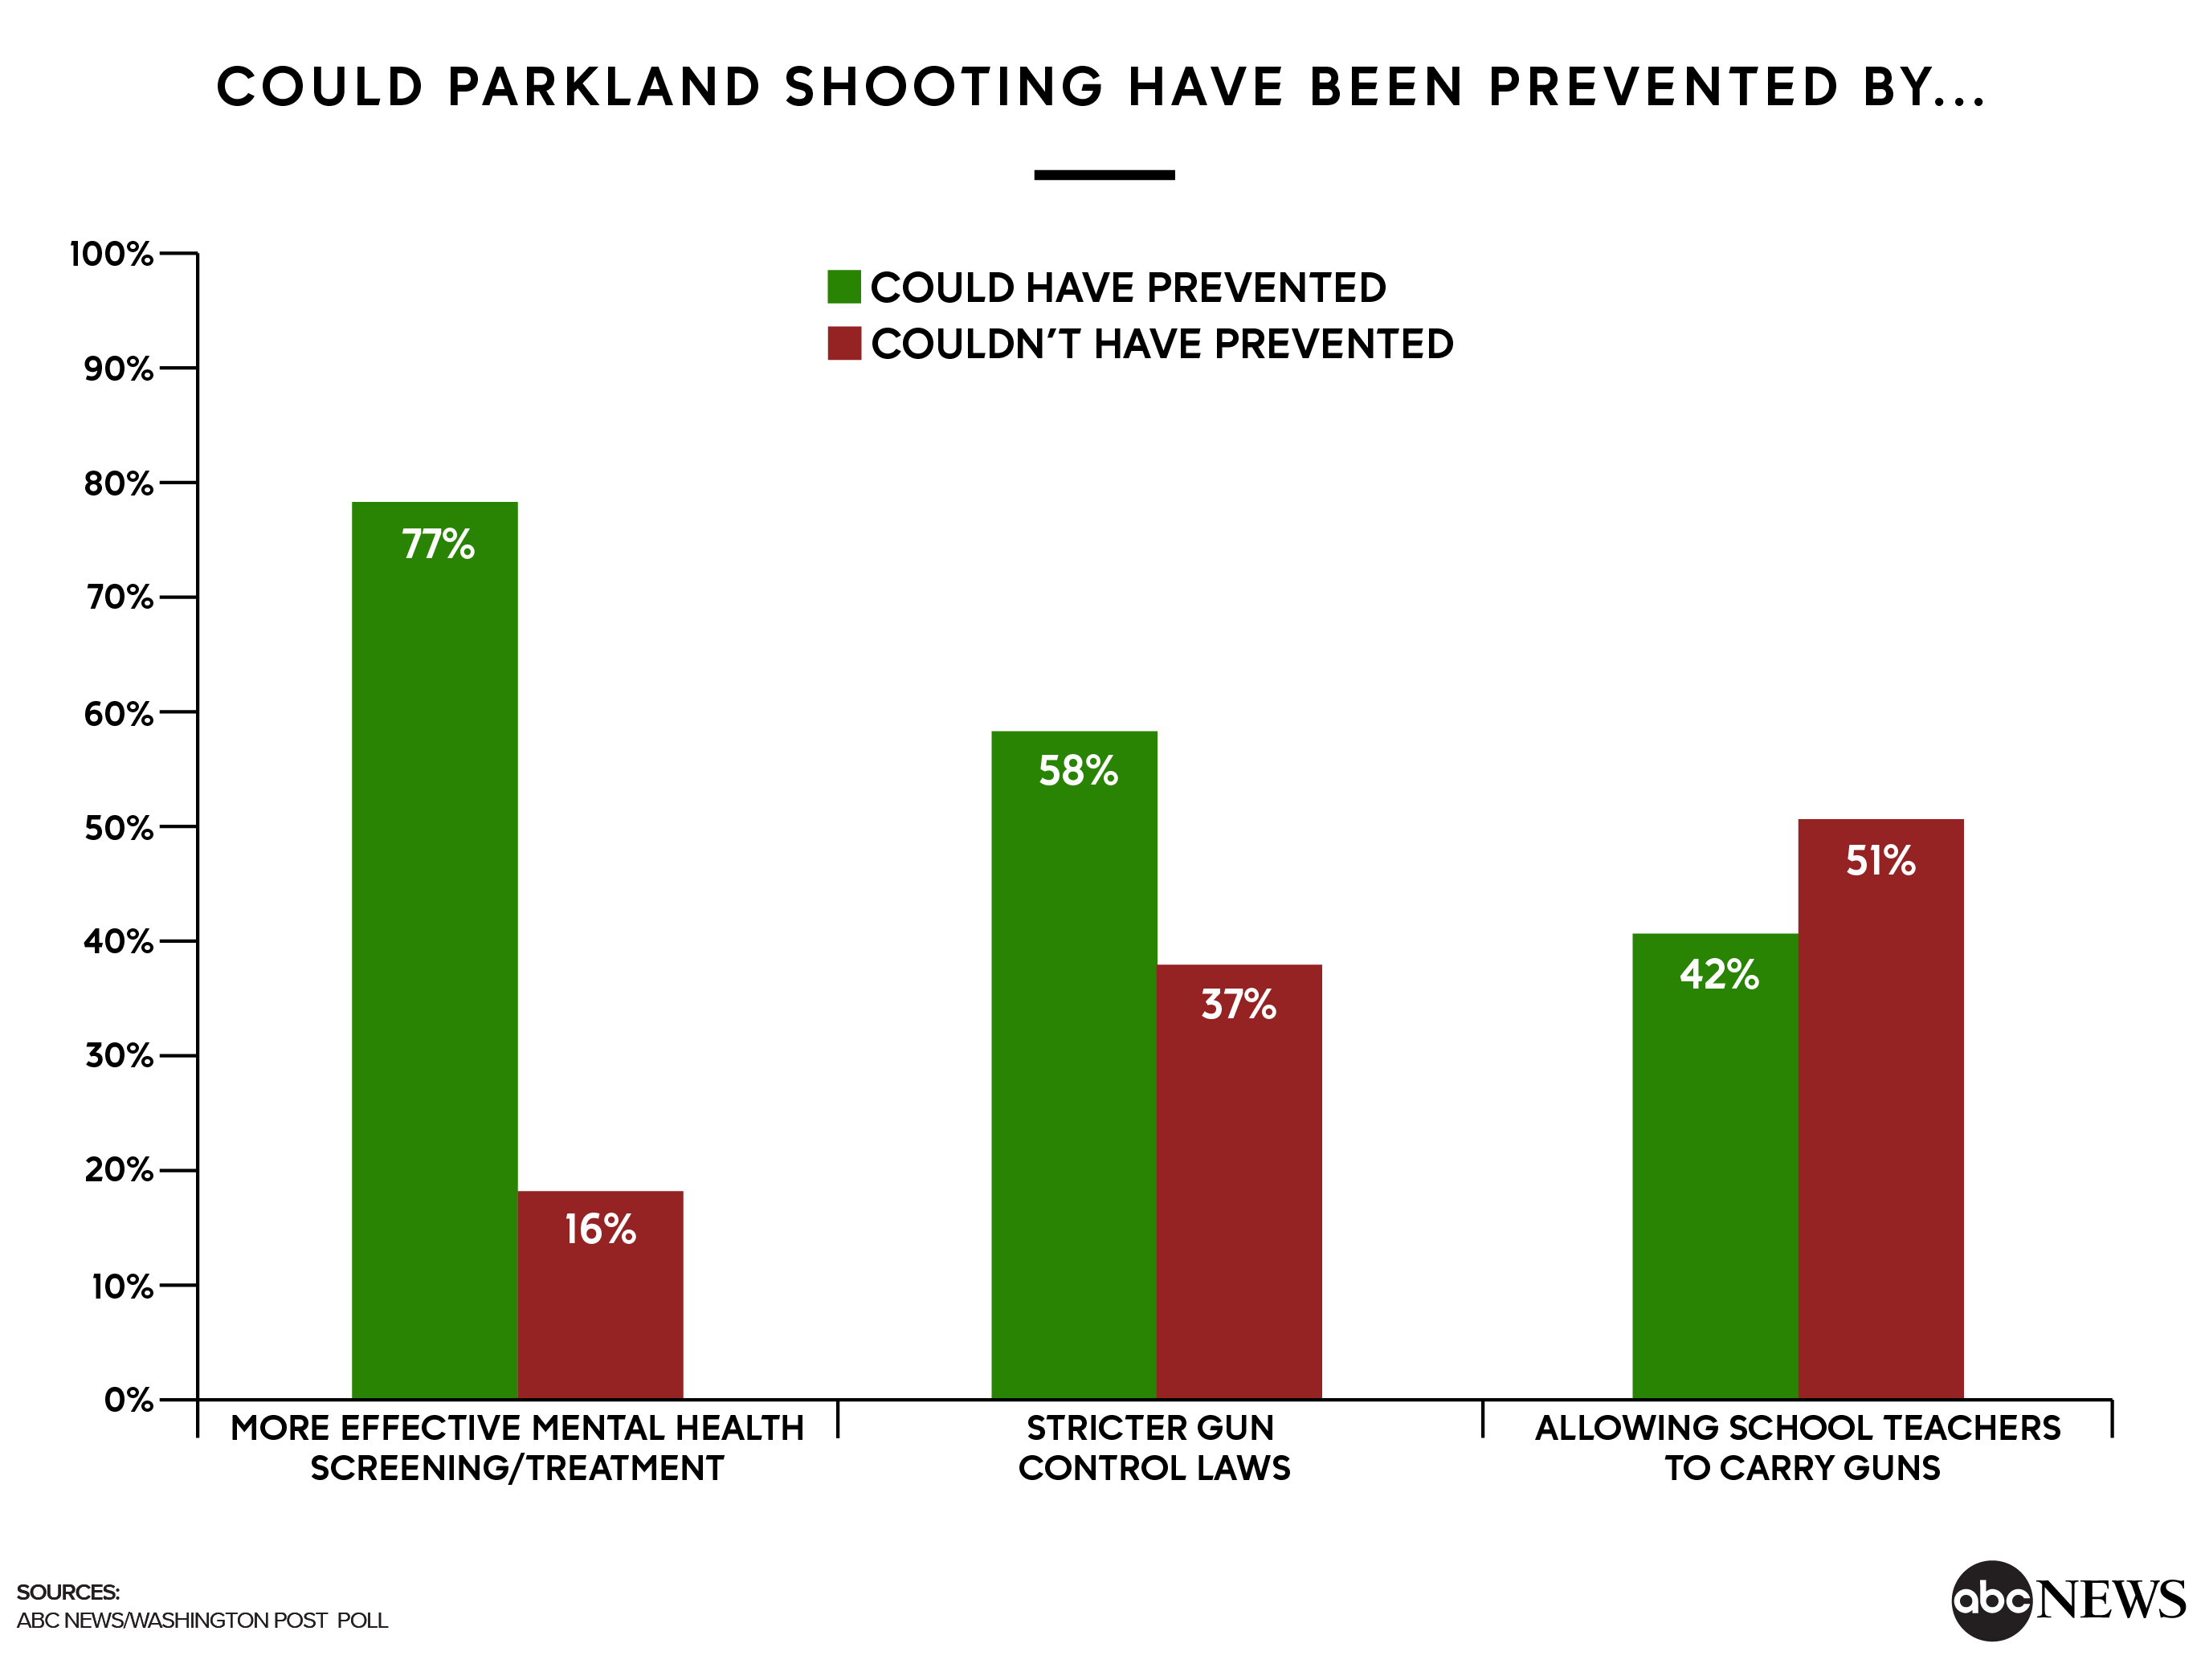 could%20parkland%20shooting%20have%20been%20prevented%20by 01 Most see inaction on mass shootings; mental health screening is a priority (POLL)